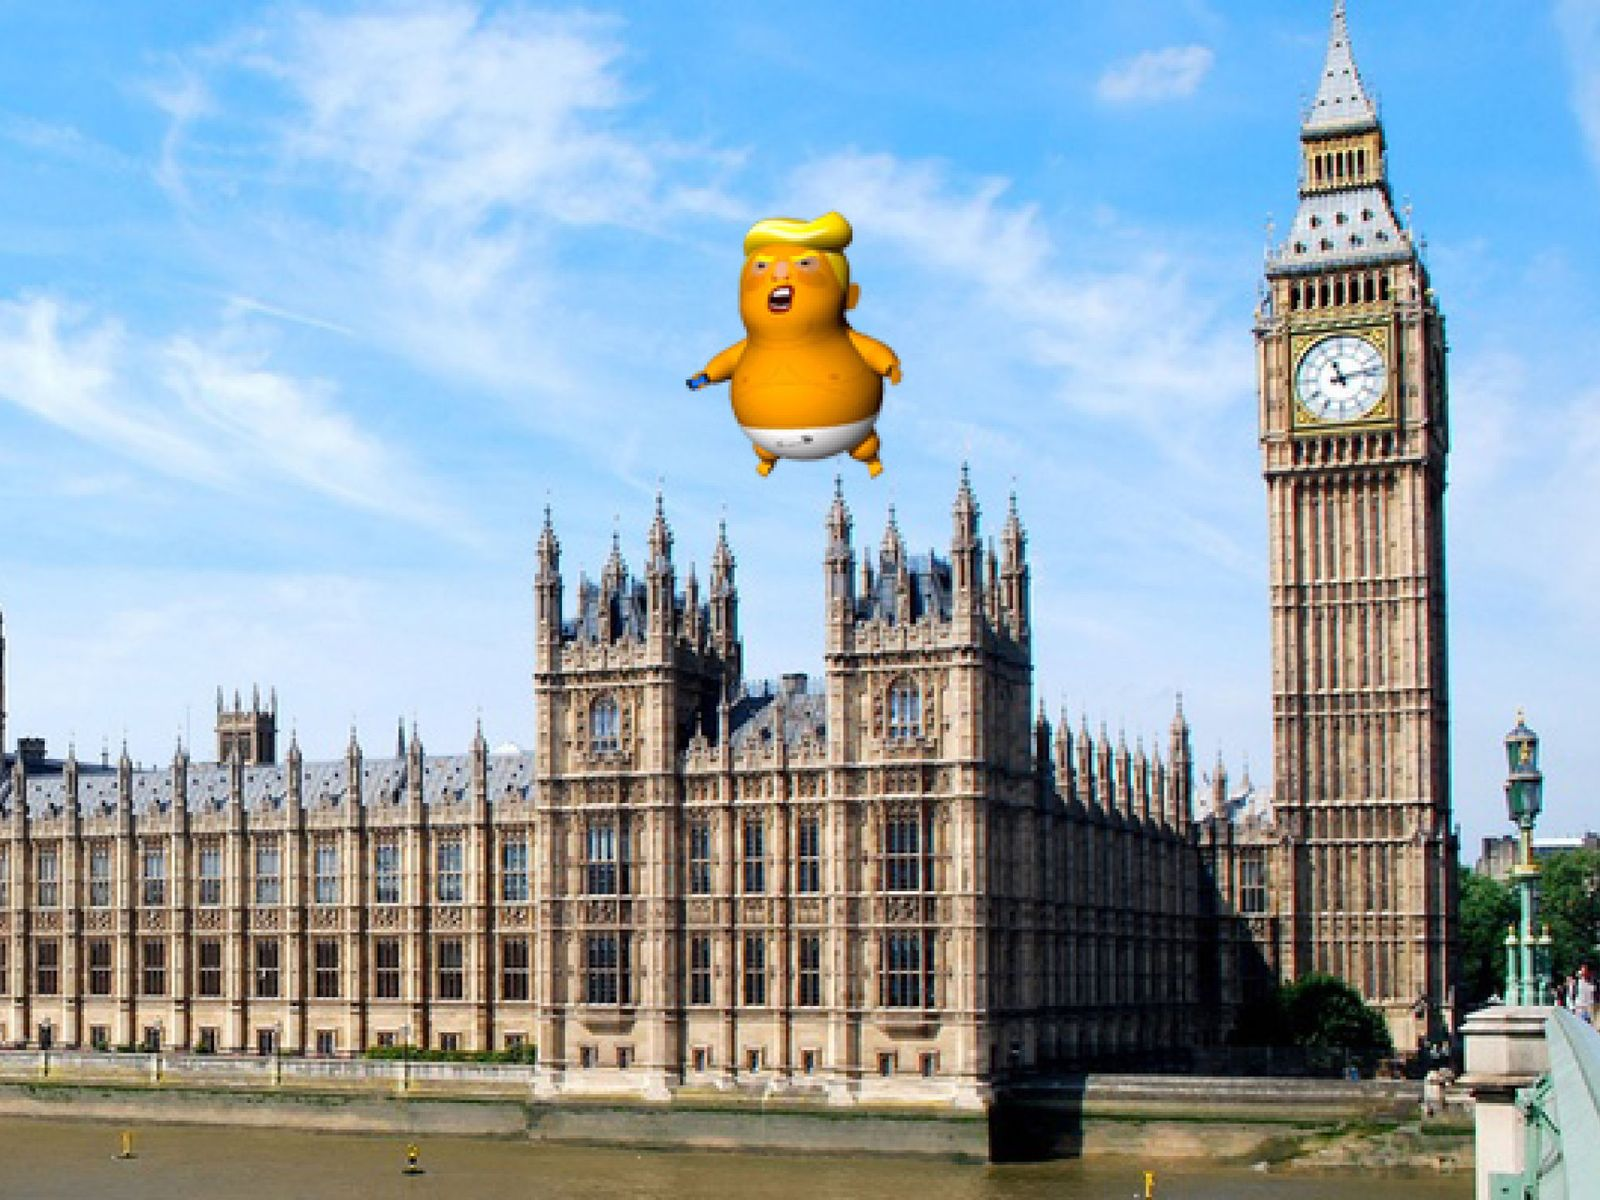 skynews-trump-baby-balloon_4352057.jpg